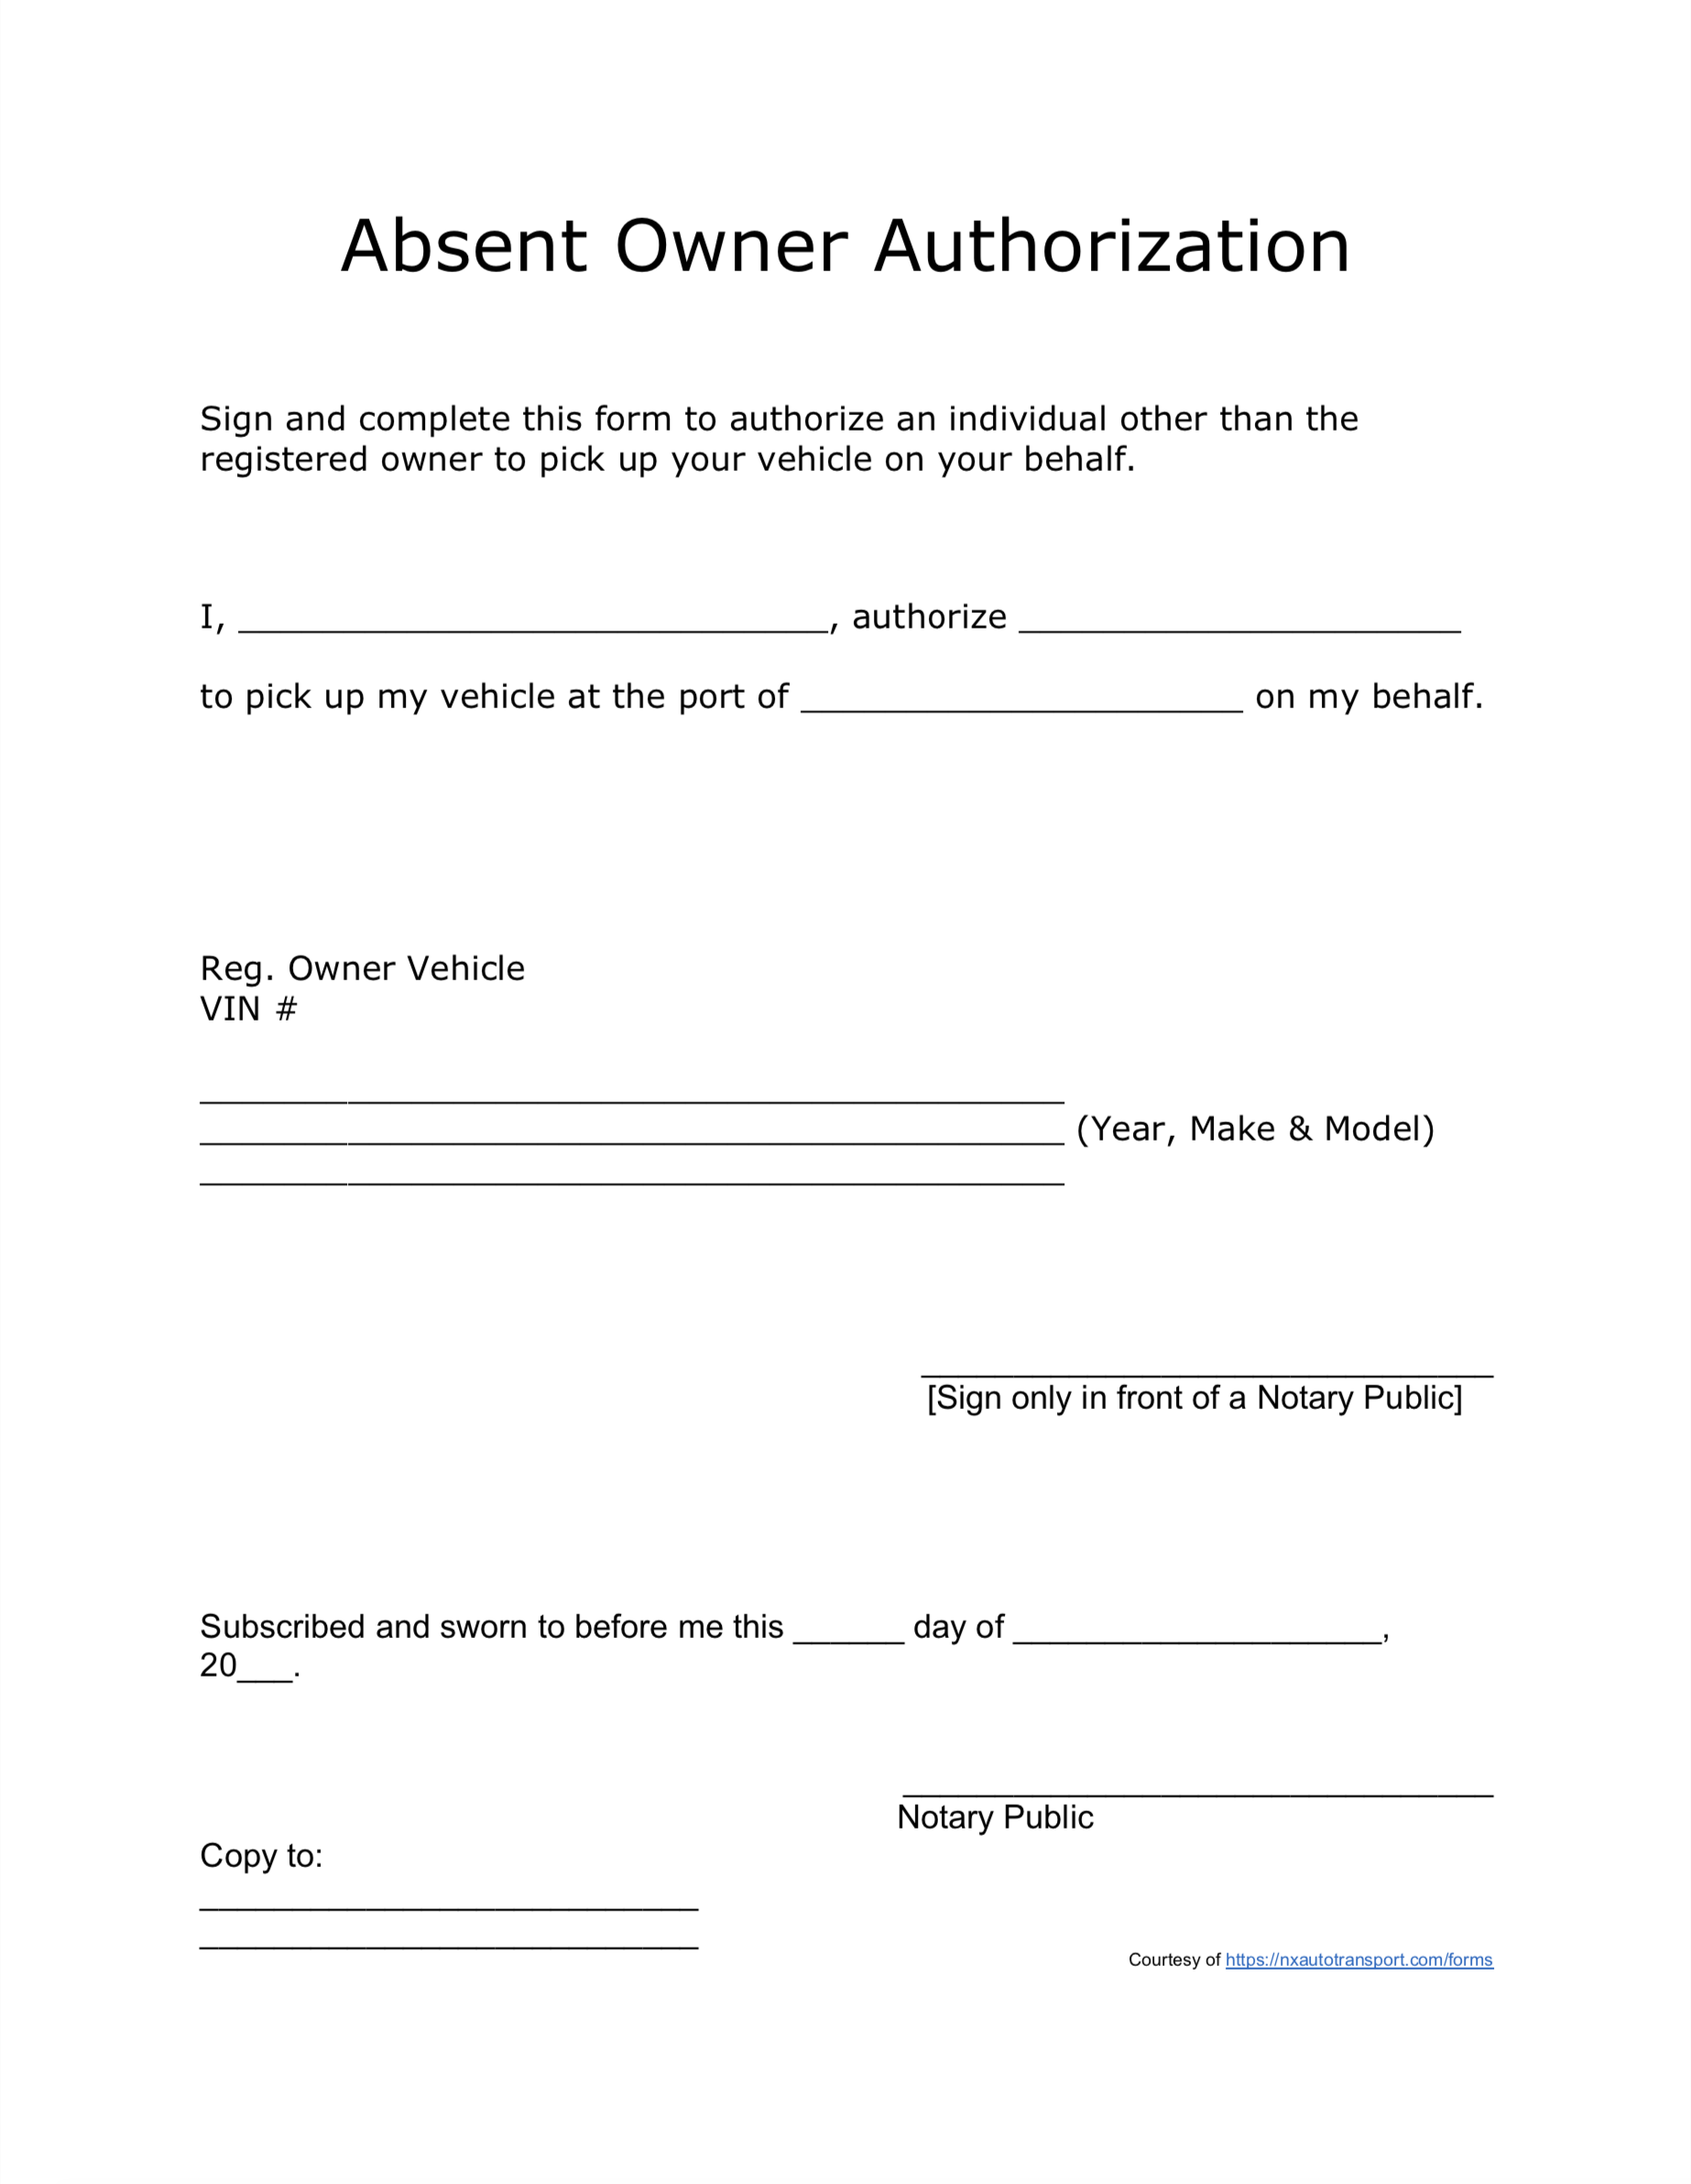 Free-Absent-Owner-Authorization-Form